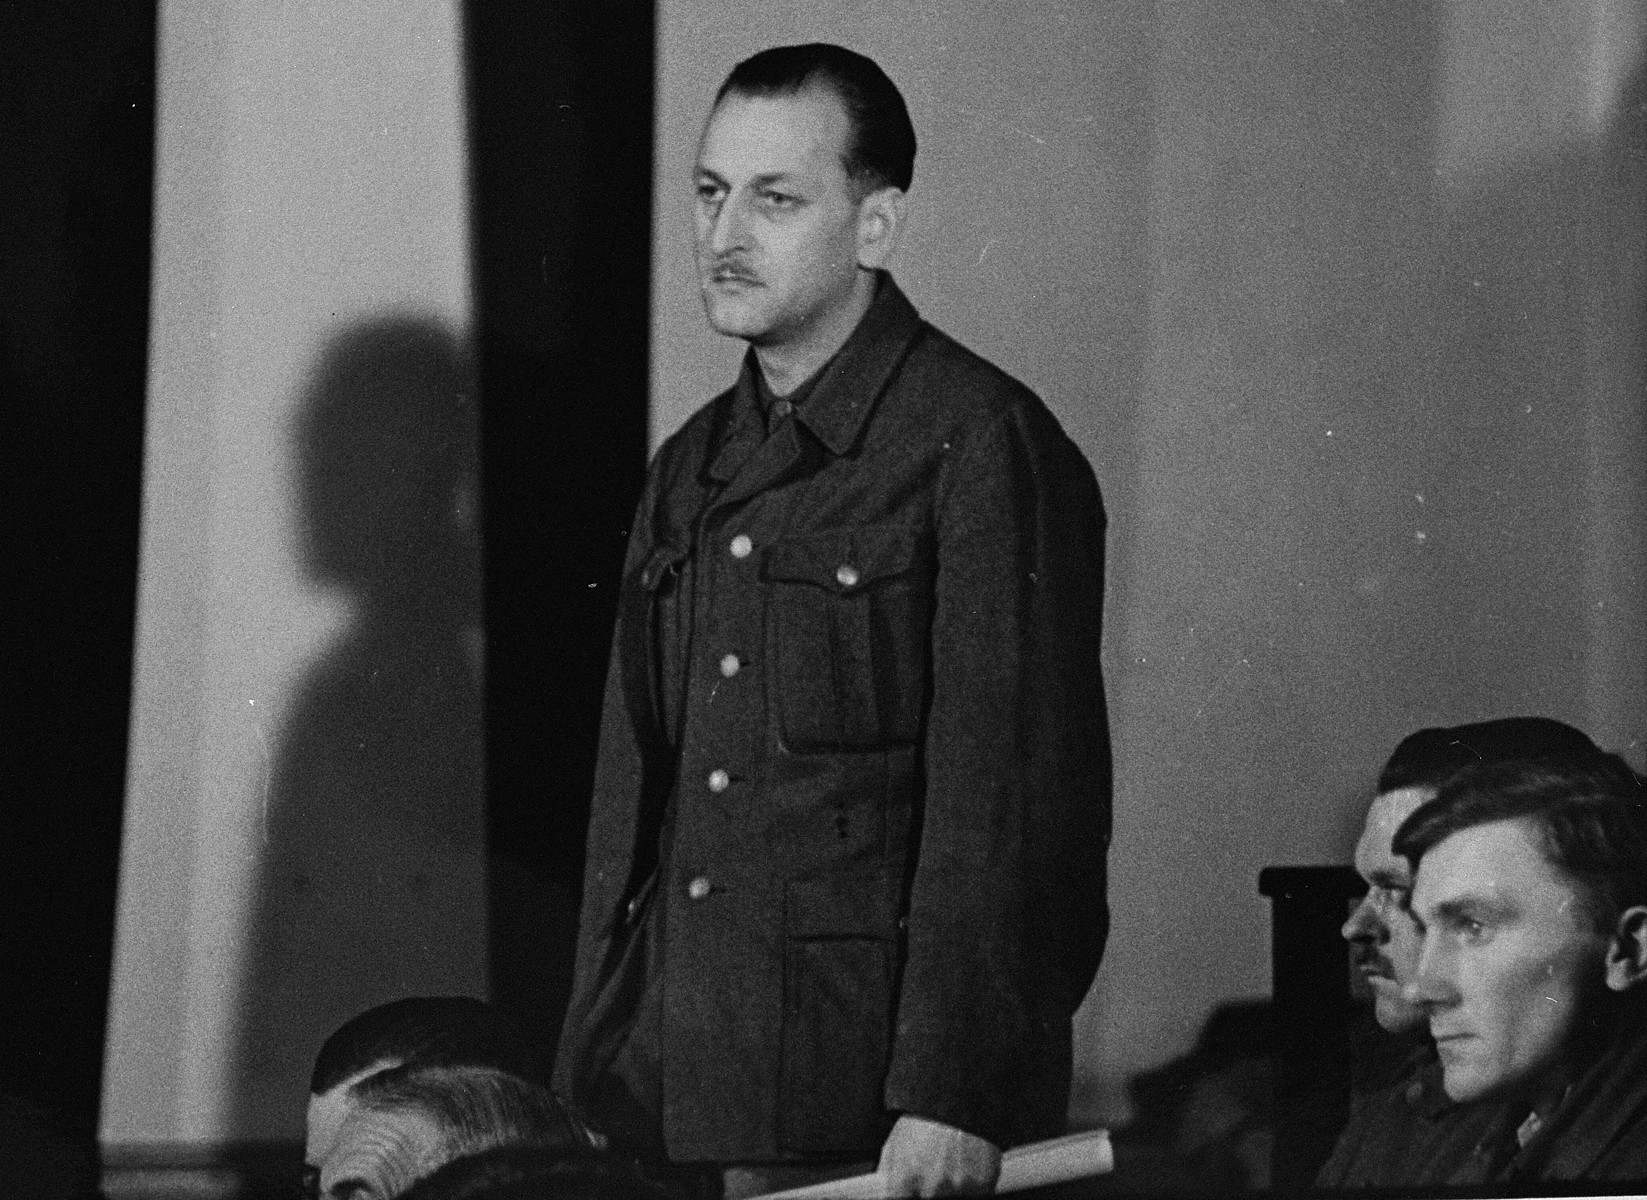 Defendant Gustav Kreindl, at the trial of 61 former camp personnel and prisoners from Mauthausen, stands in his place in the defendants' dock.   Kreindl was a medical orderly at Ebensee, a sub-camp of Mauthausen.  He was accused of selecting incurable patients at the camp infirmary to be exterminated.  He was convicted and executed on May 27, 1946.